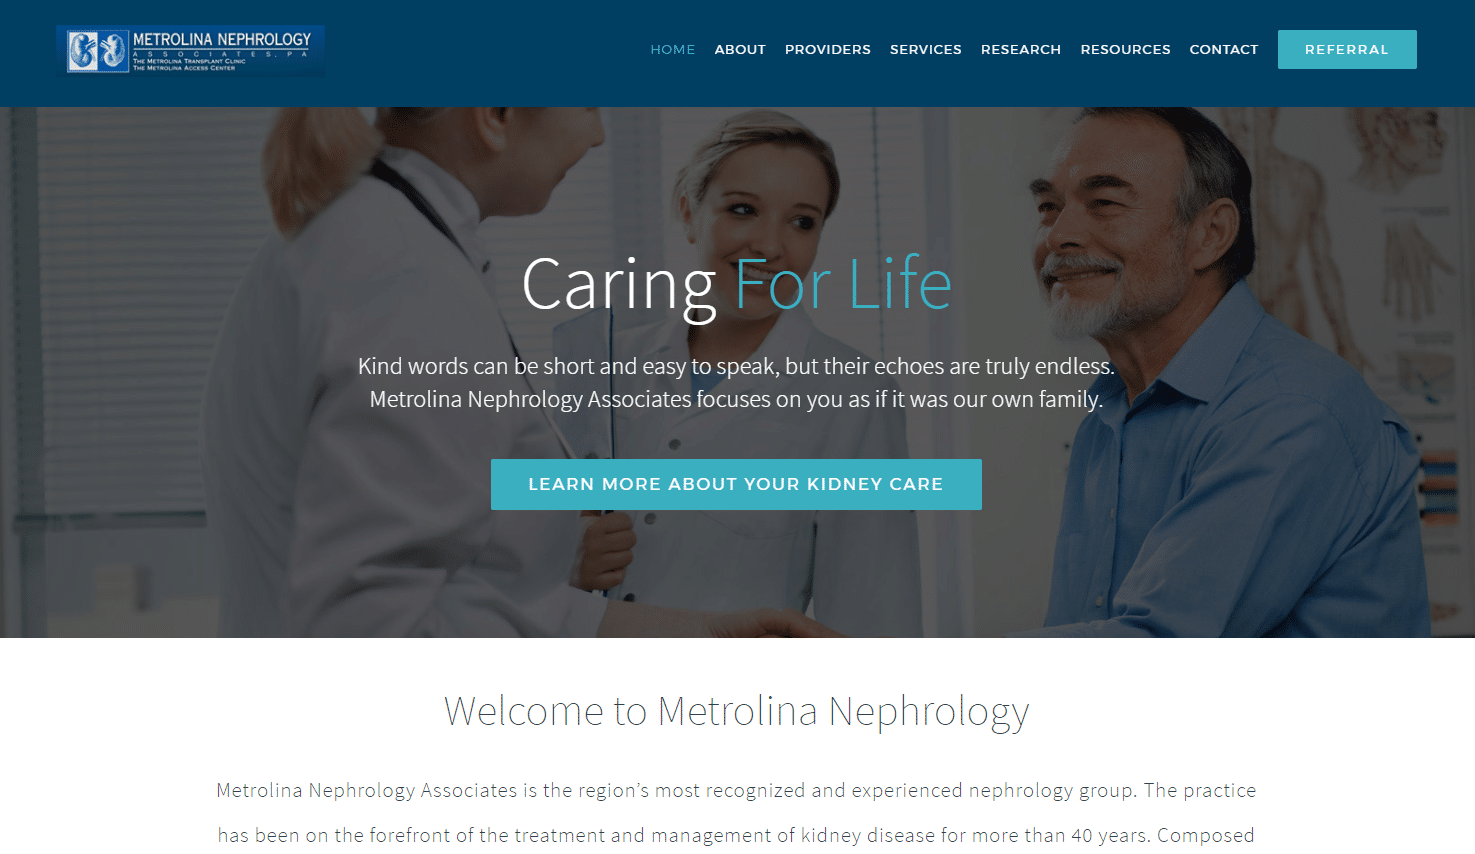 healthcare website development portfolio 21